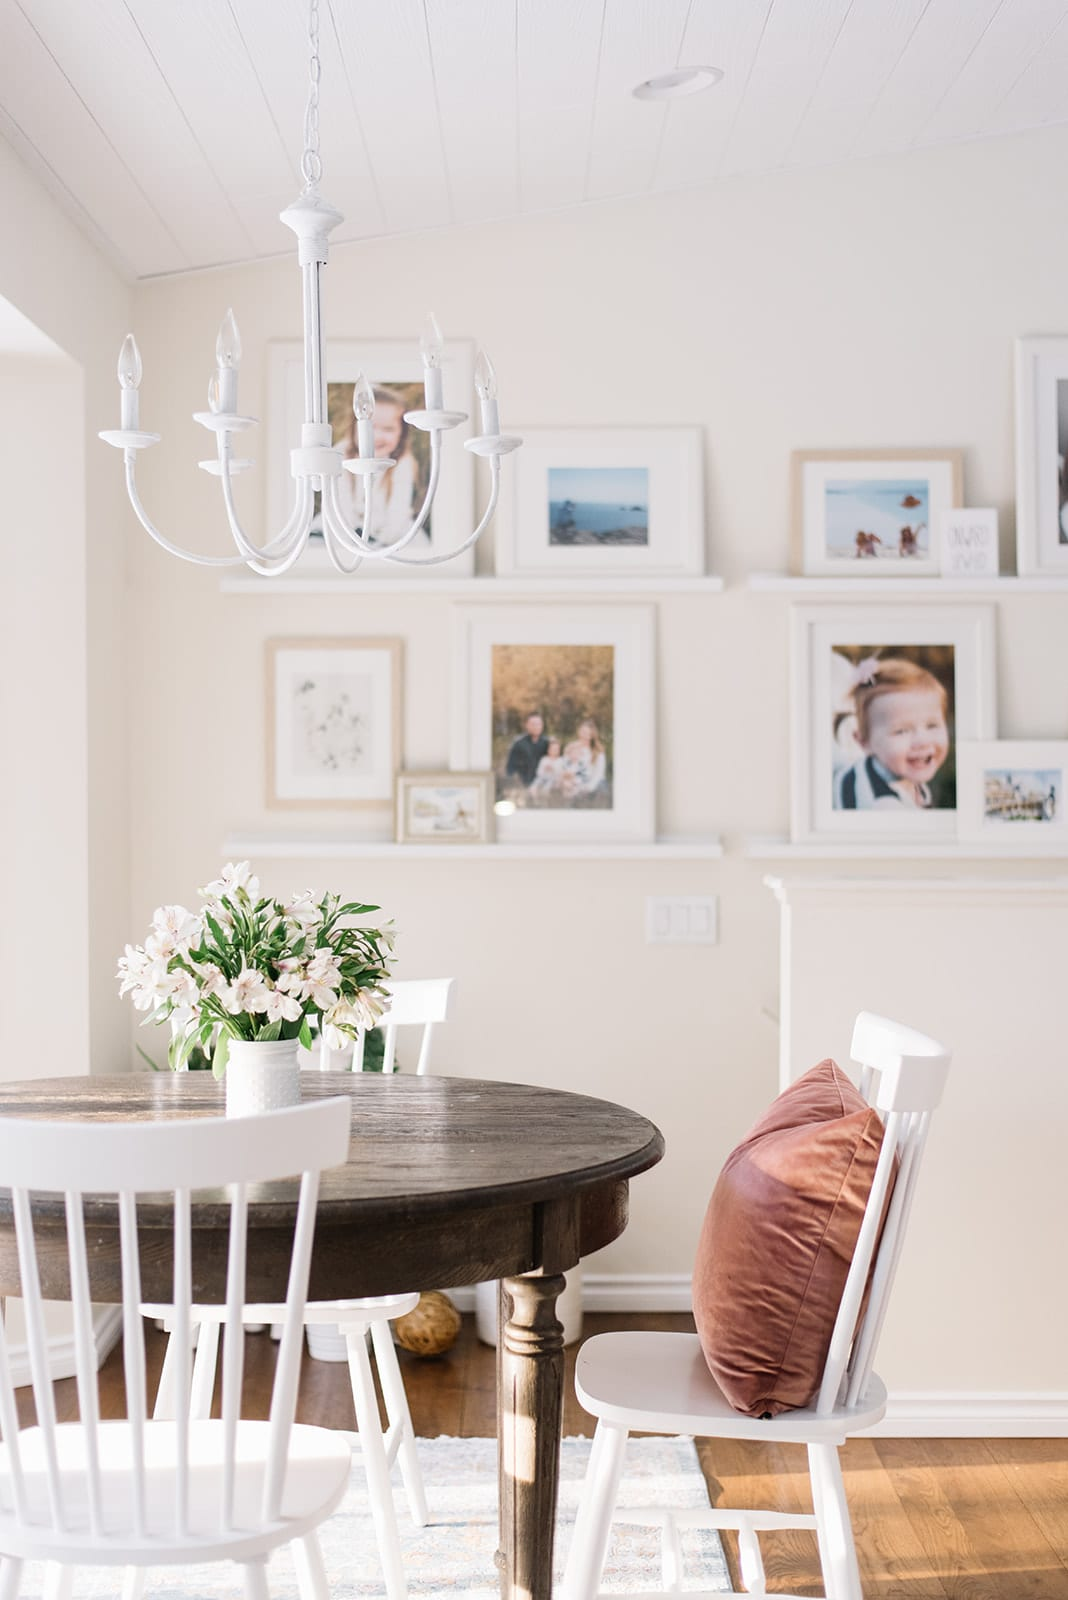 Dining room update for Winter with pink throw pillows for a pop of colour